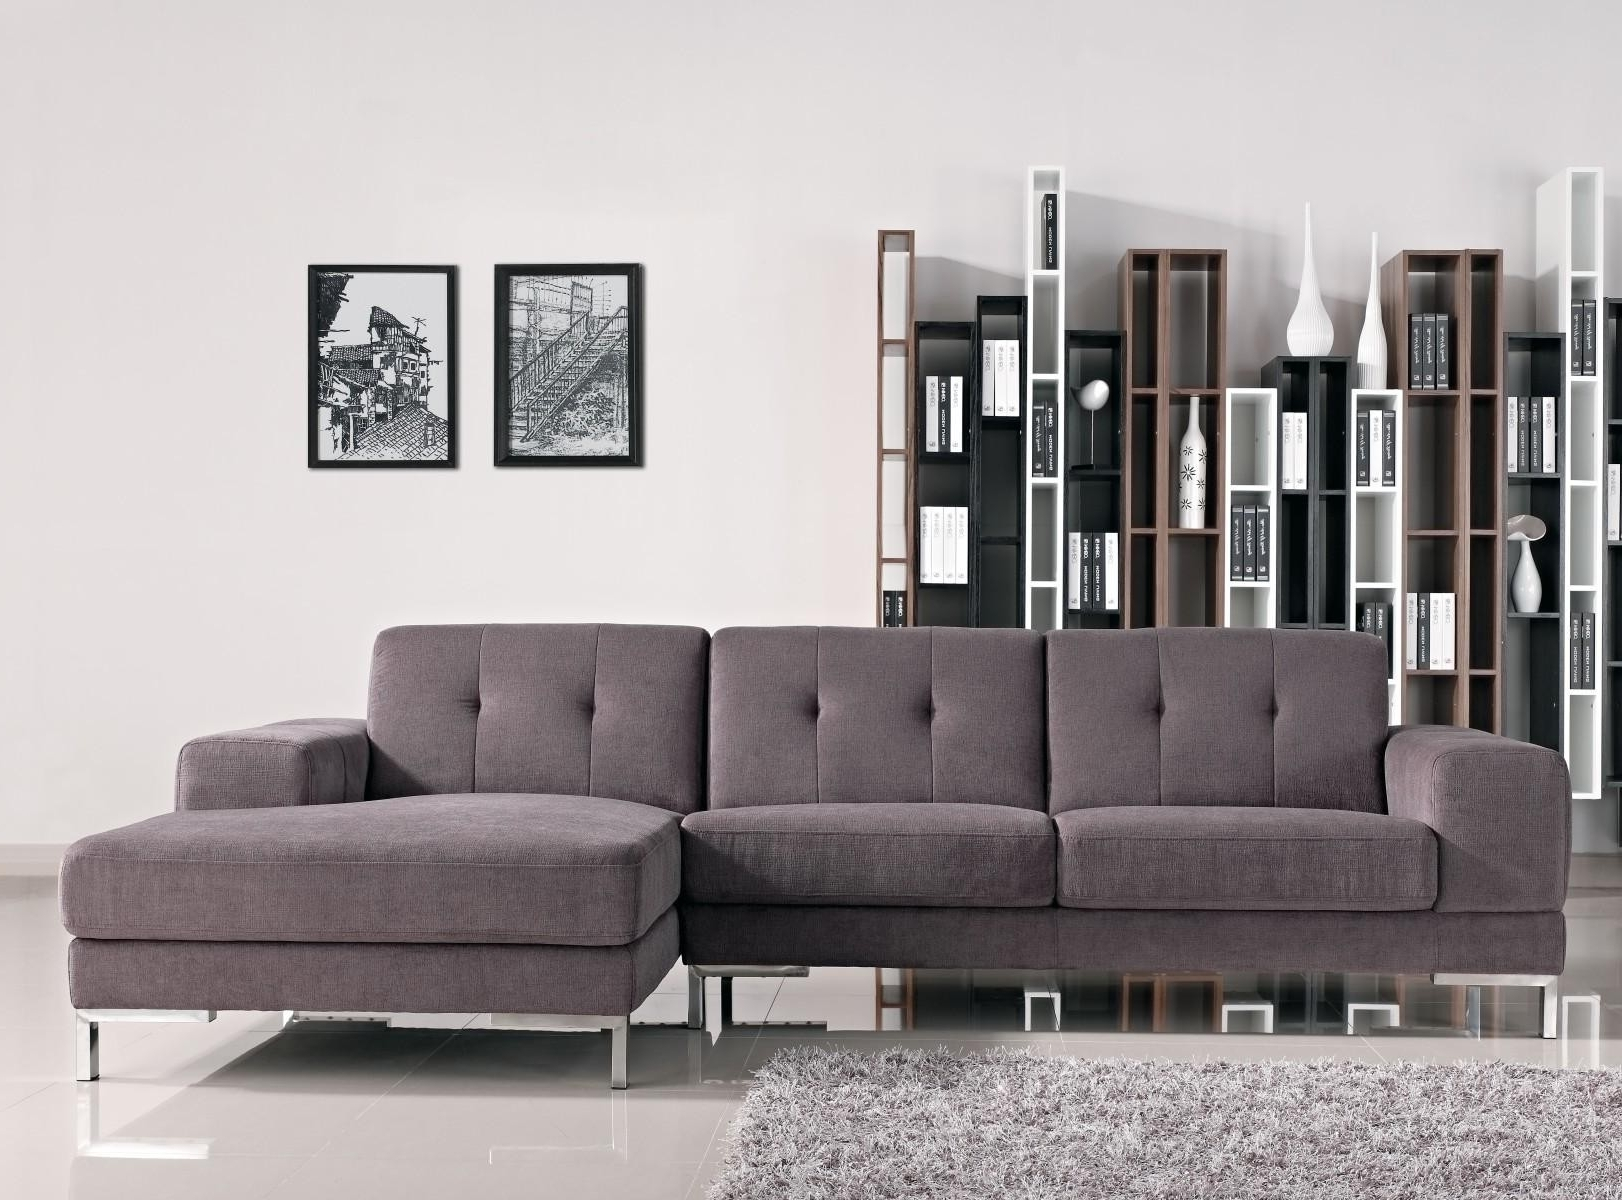 Best And Newest Hawaii Sectional Sofas Intended For Furniture : Couch Tuner Reviews Futon Furniture In Hawaii Futon (View 1 of 20)